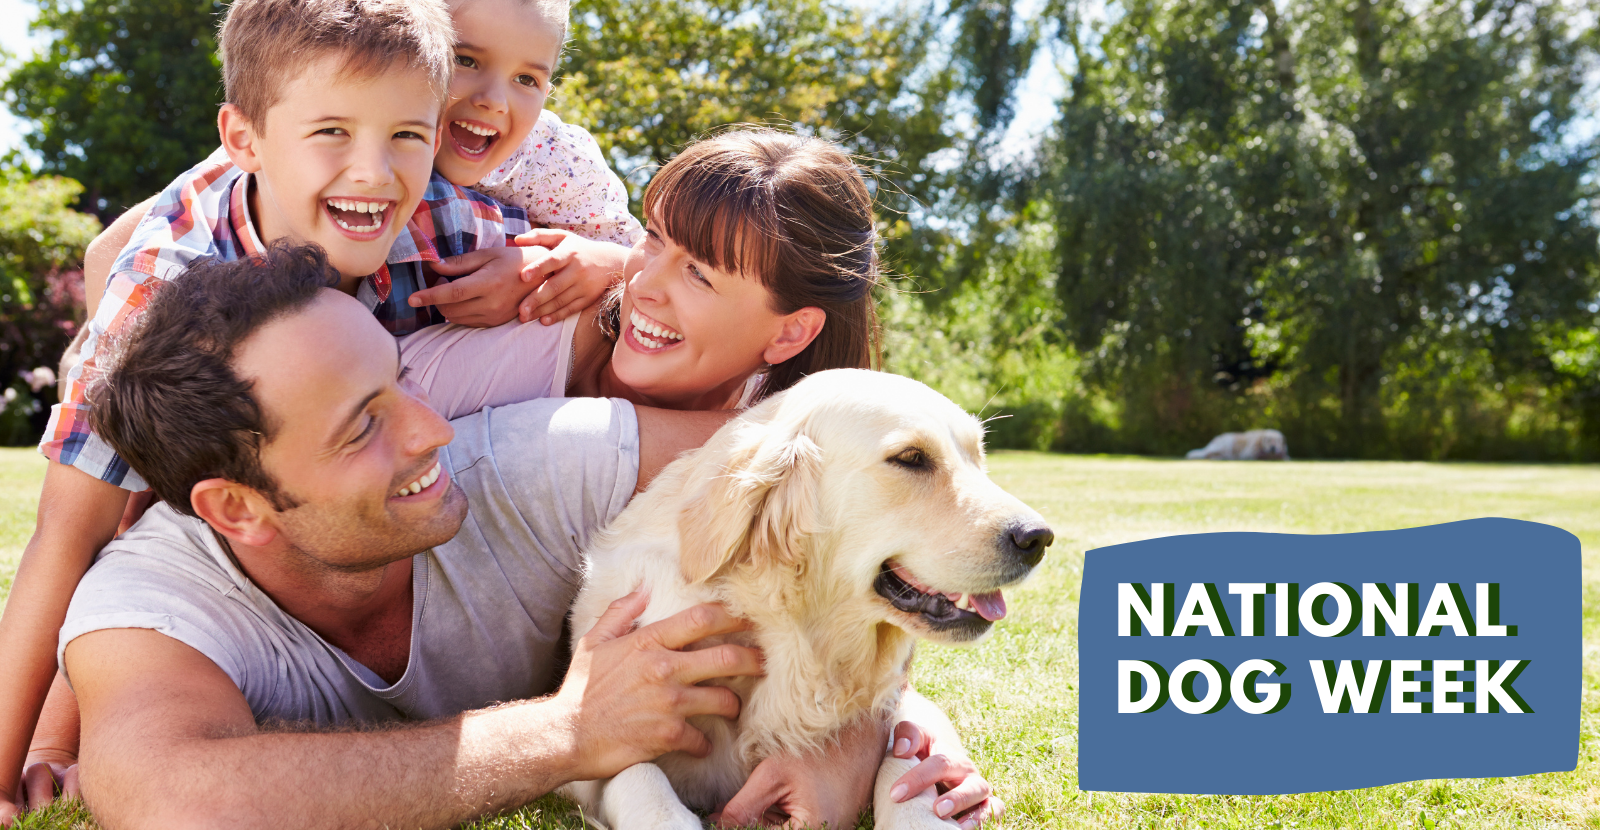 Celebrate National Dog Week with Happy Healthy Dogs